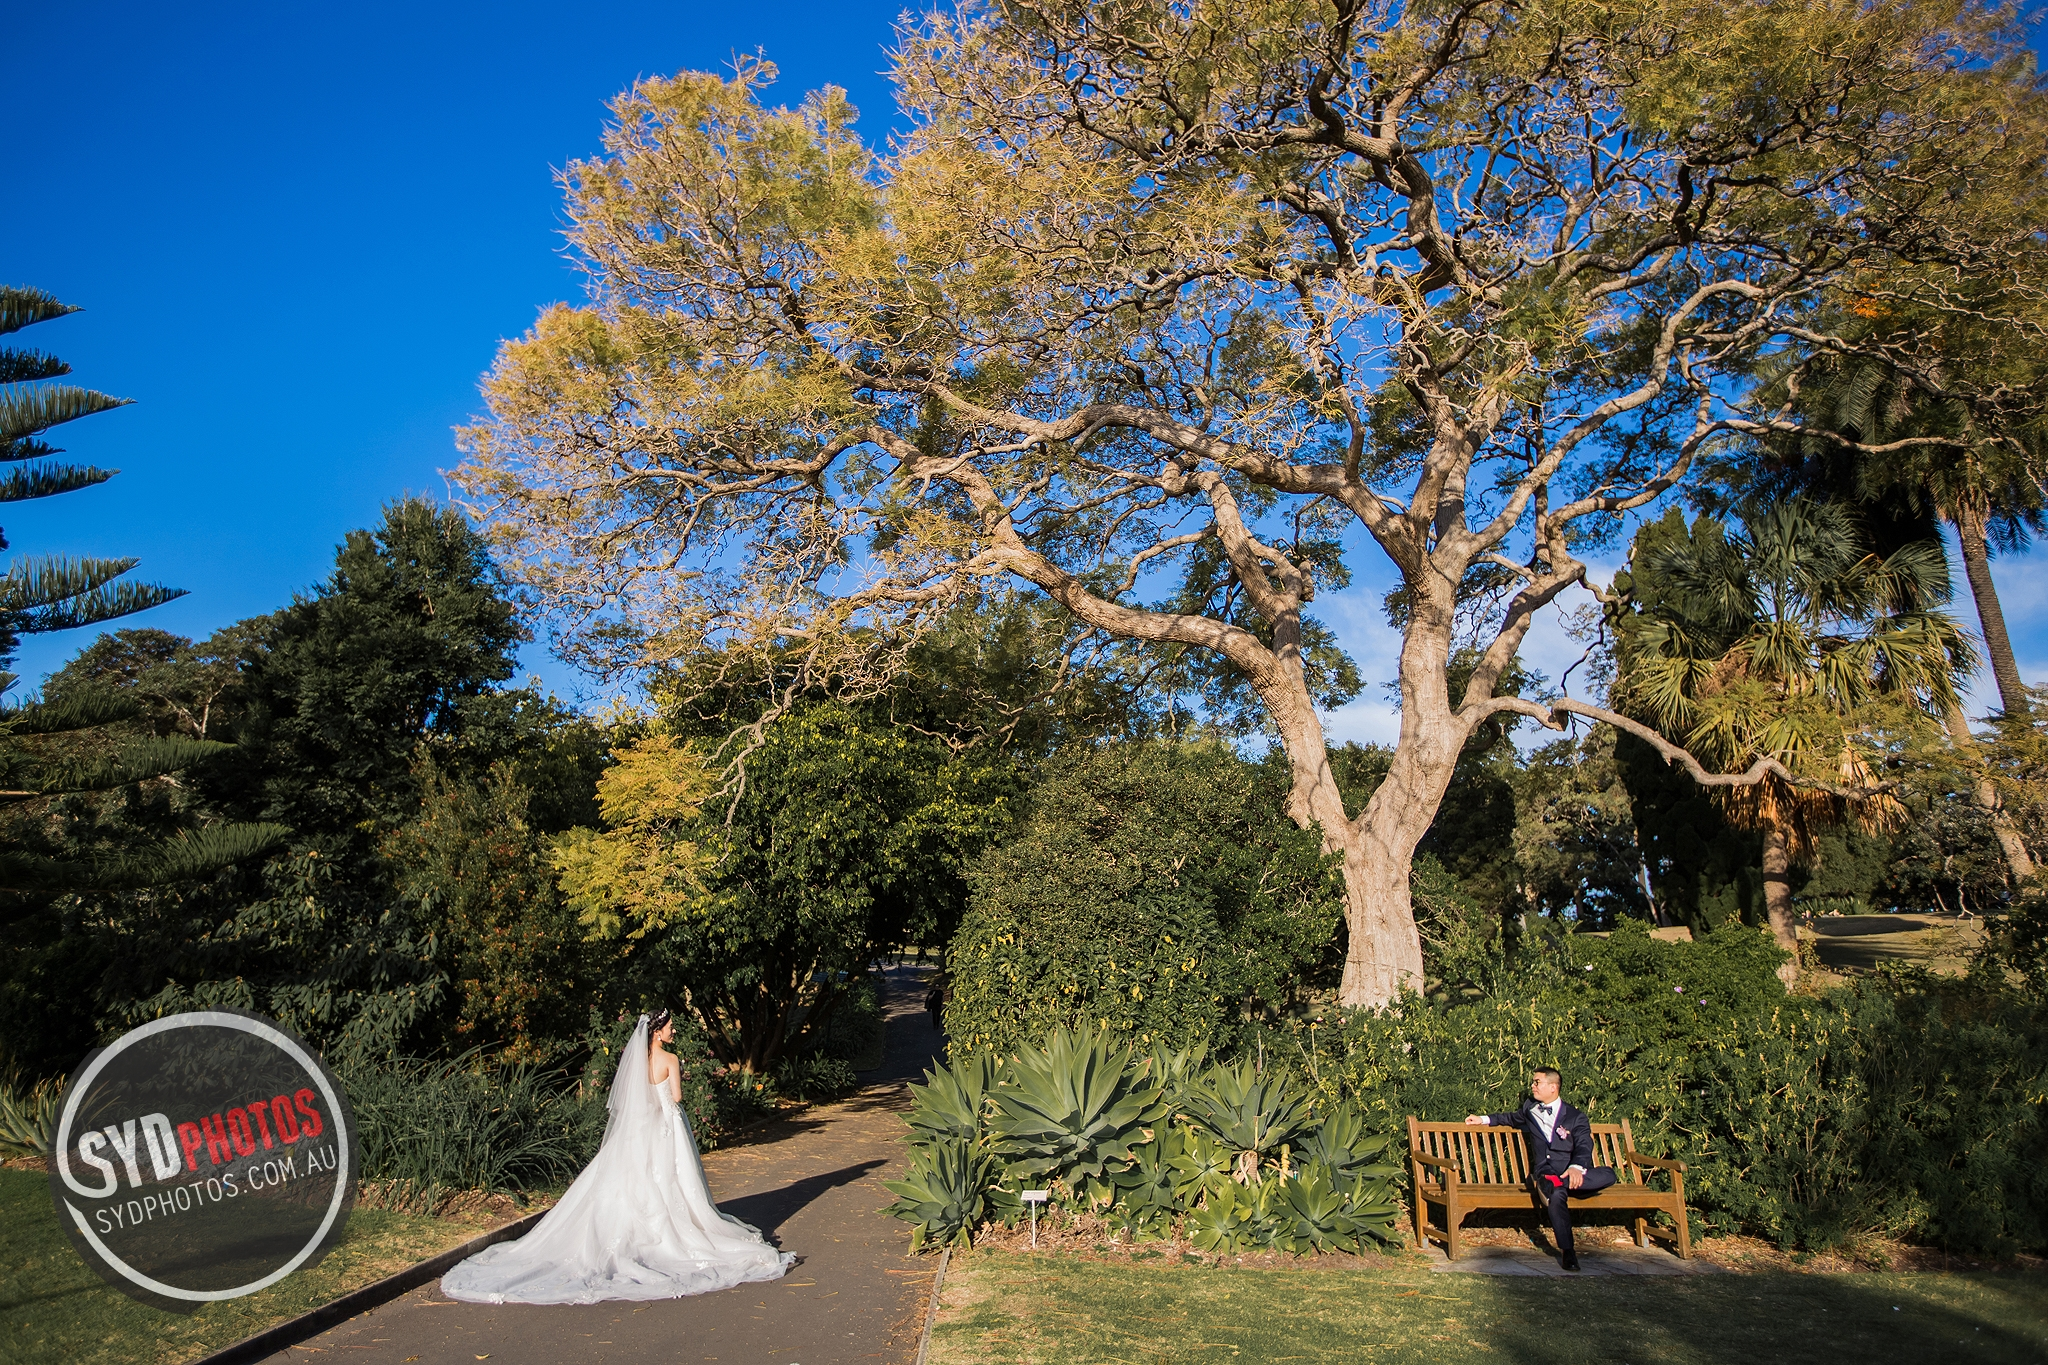 id-80174-20170903-635.jpg, By Photographer Sydphotos.wedding, Created on 11 Feb 2018, SYDPHOTOS Photography all rights reserved.